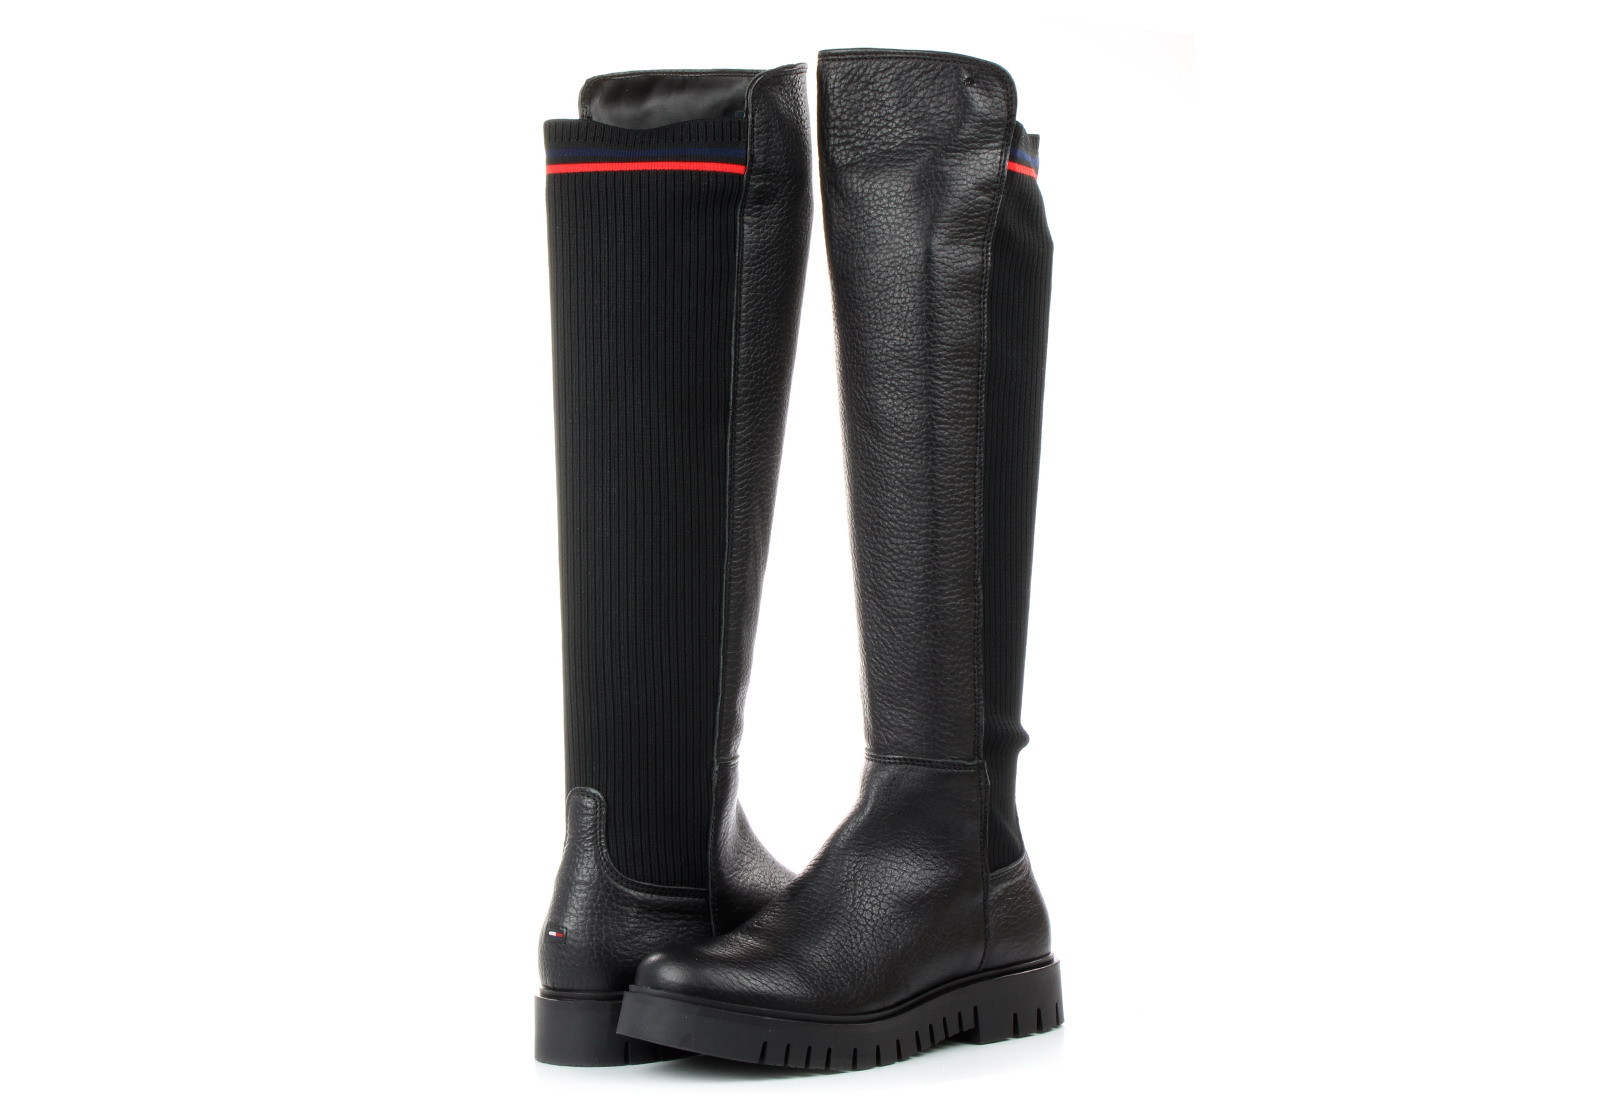 super popular 0fcb4 af4bb Tommy Hilfiger Boots - Yvonne 3c - 18F-0382-990 - Online shop for sneakers,  shoes and boots